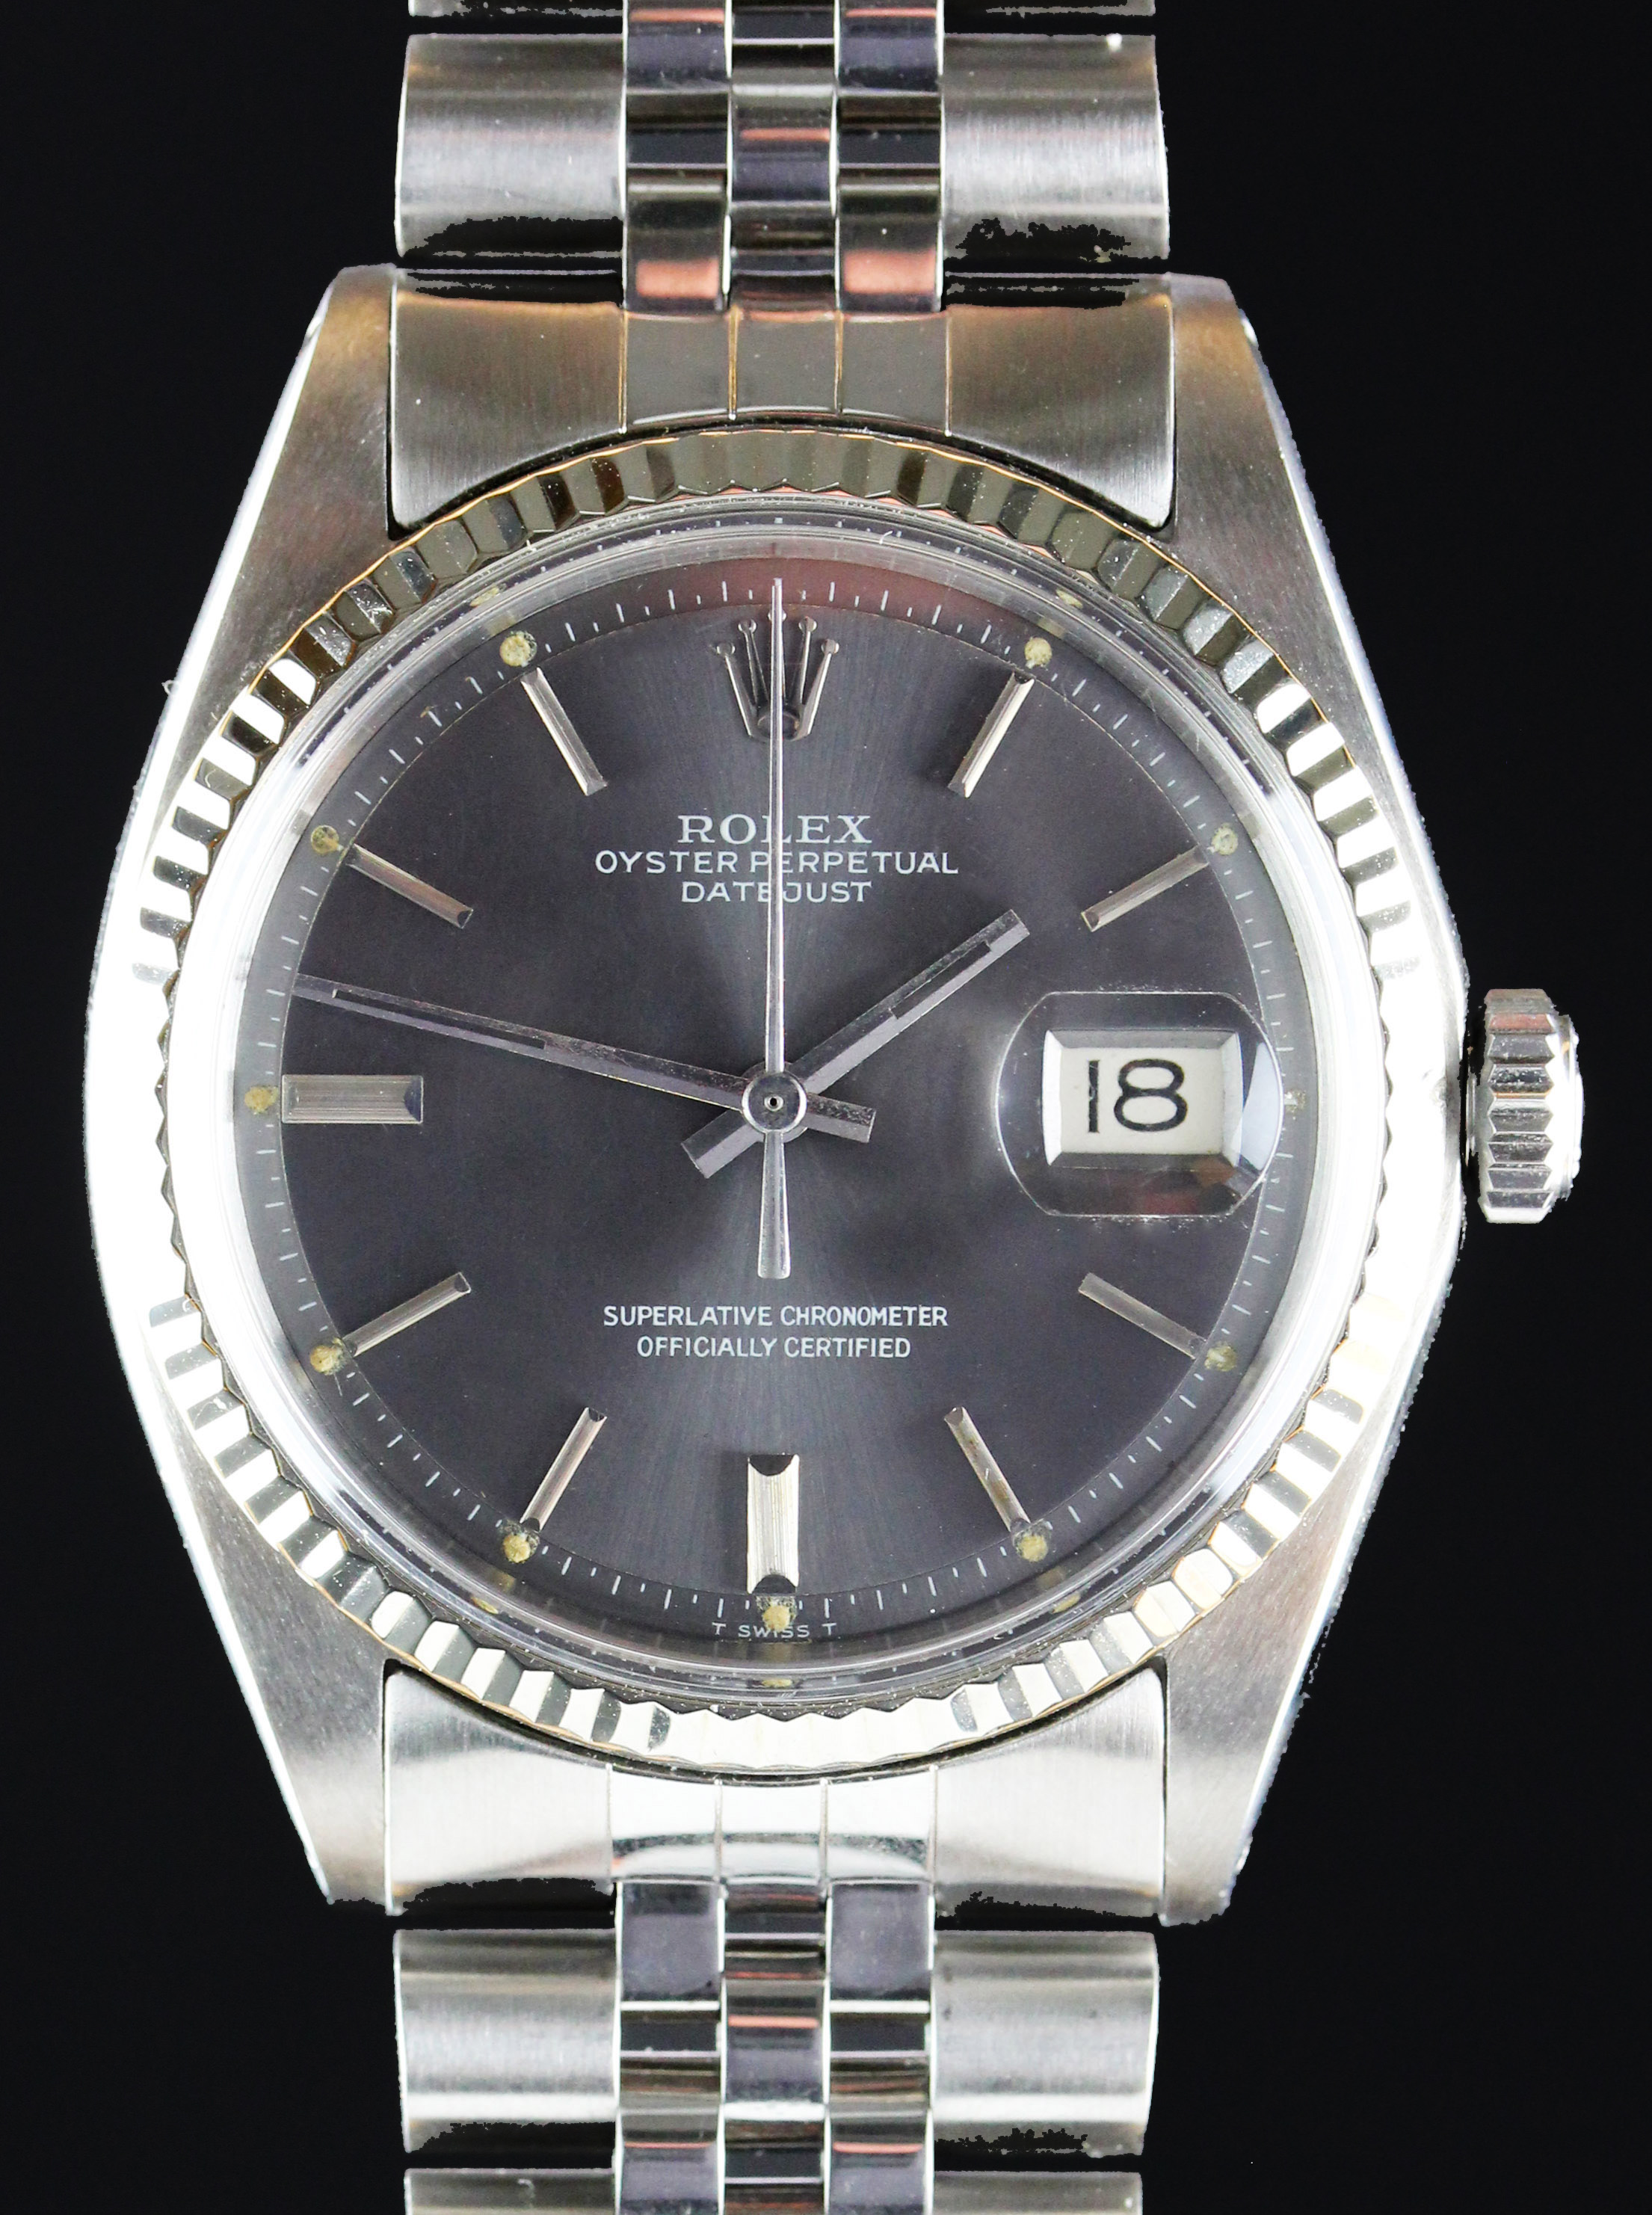 ROLEX Datejust ref. 1601 in steel & white gold from 1972